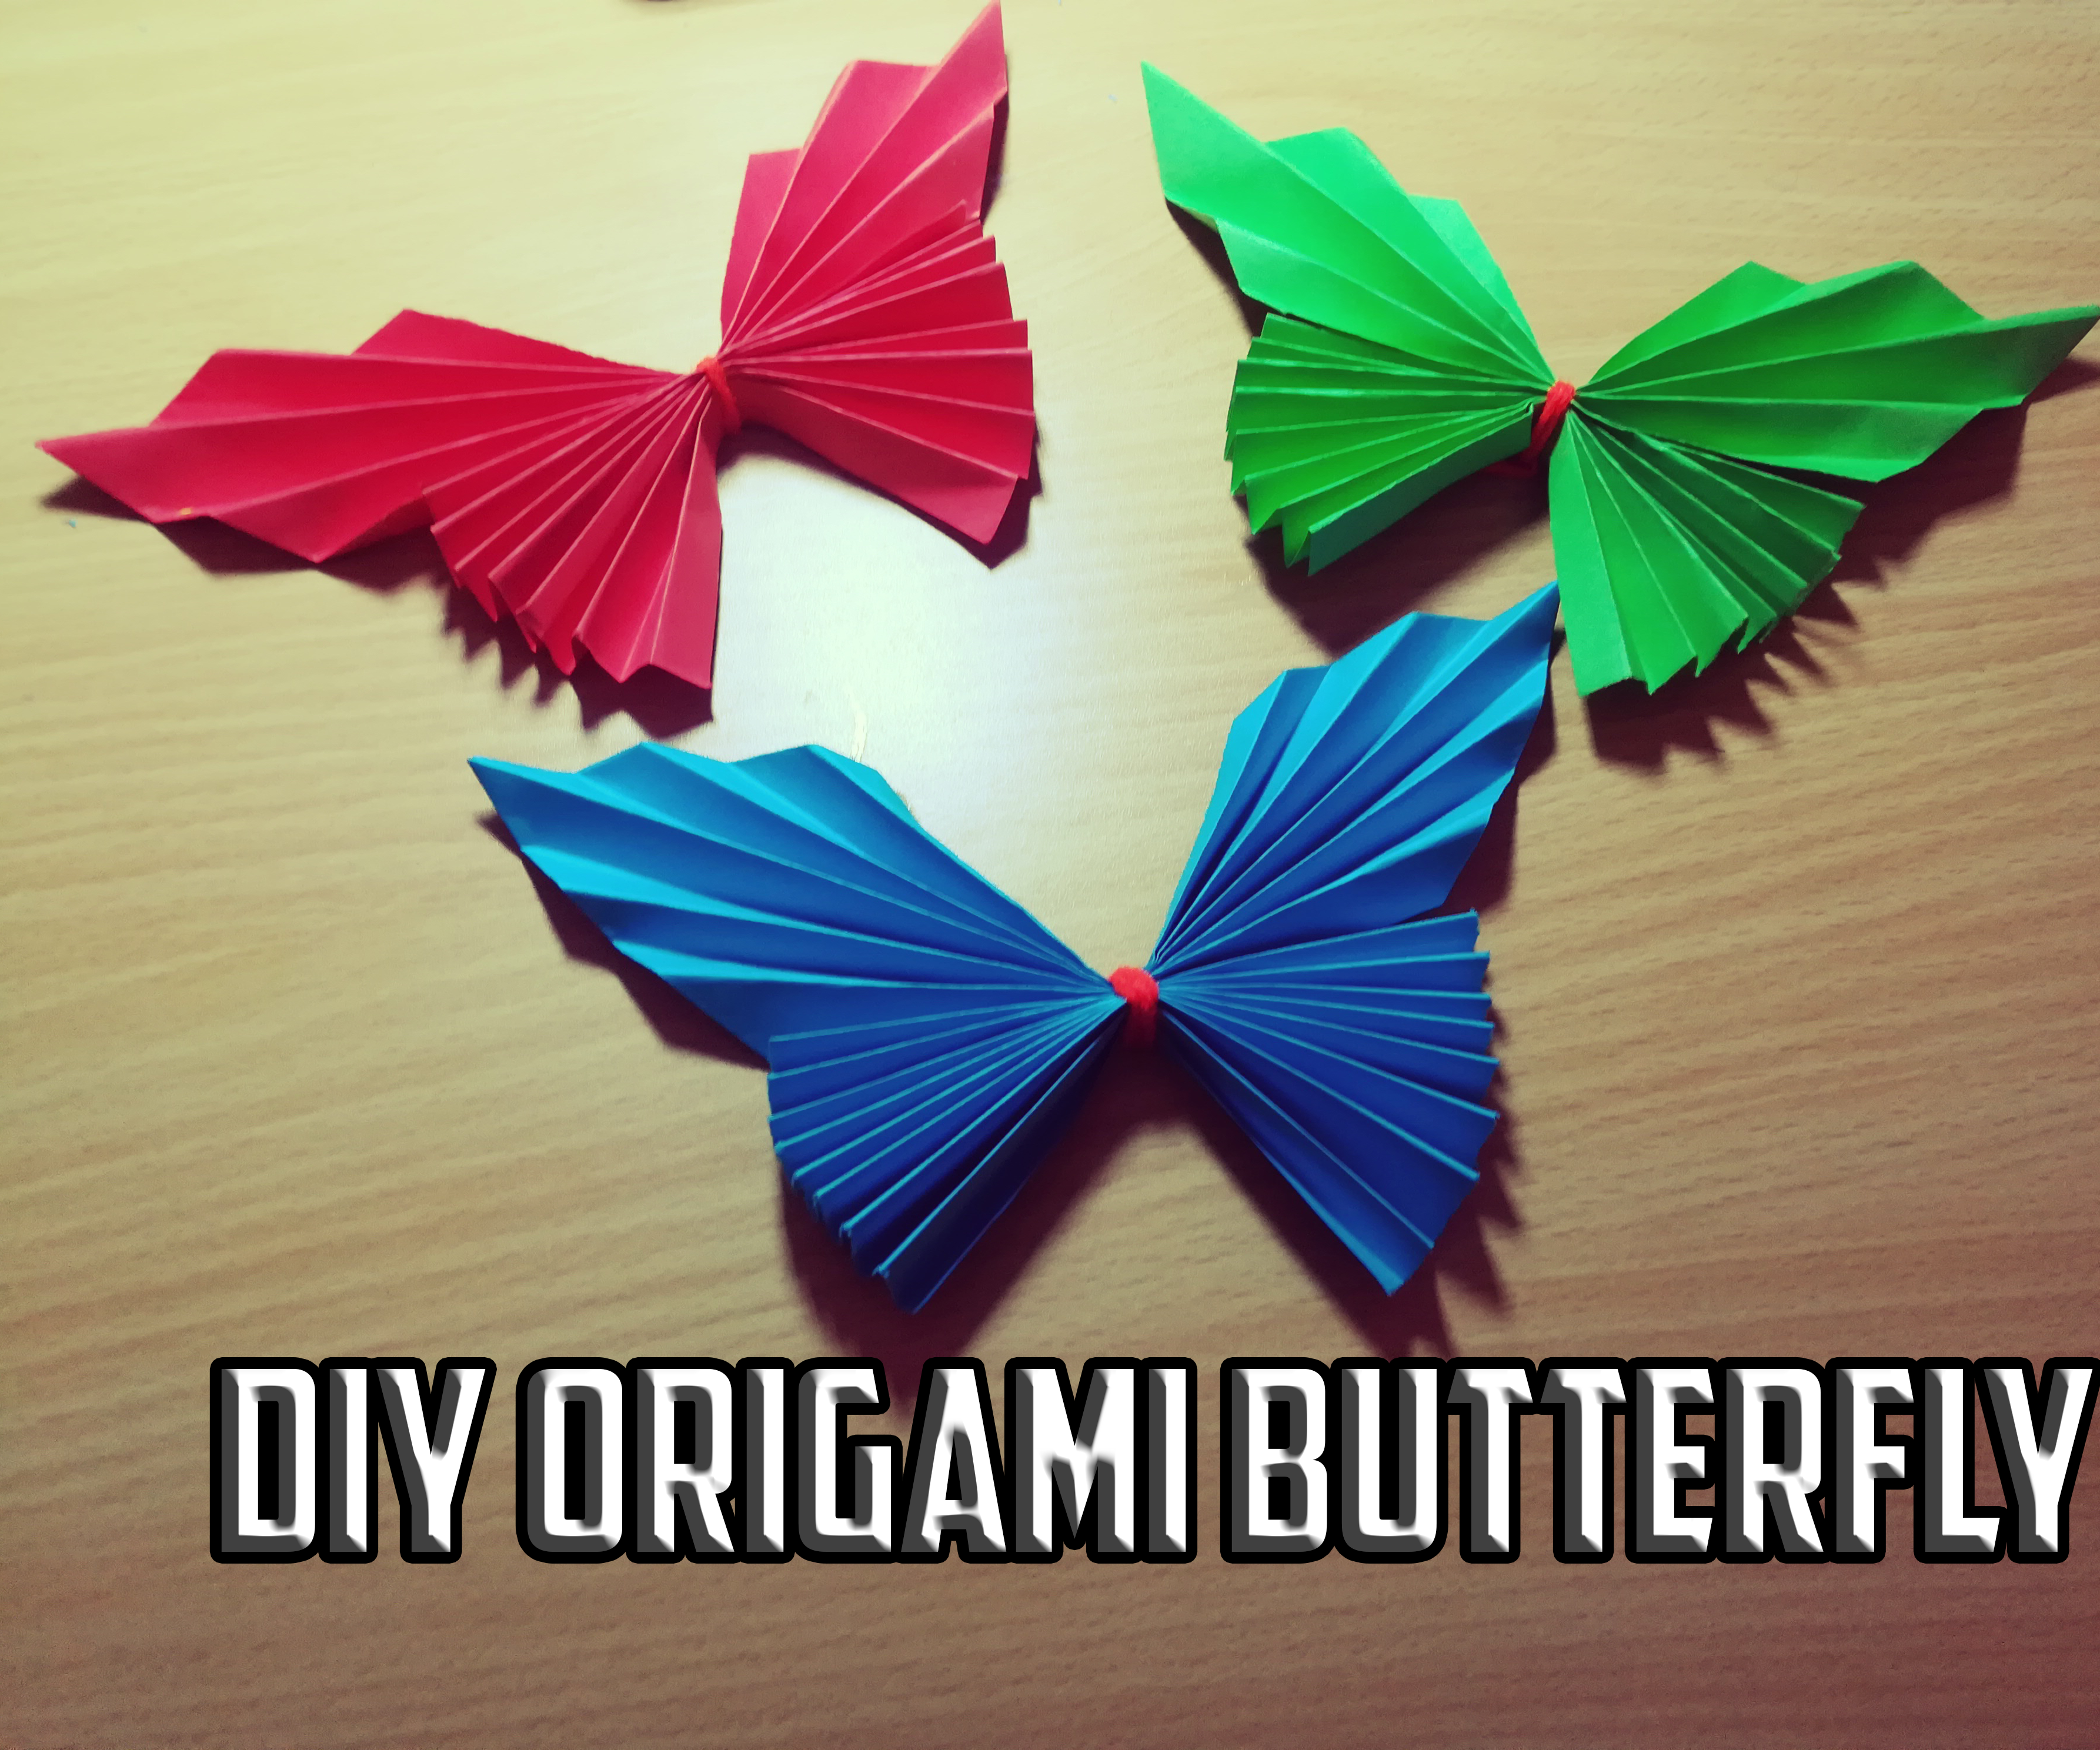 Origami Butterfly (Folding Instructions) - YouTube   2976x3571